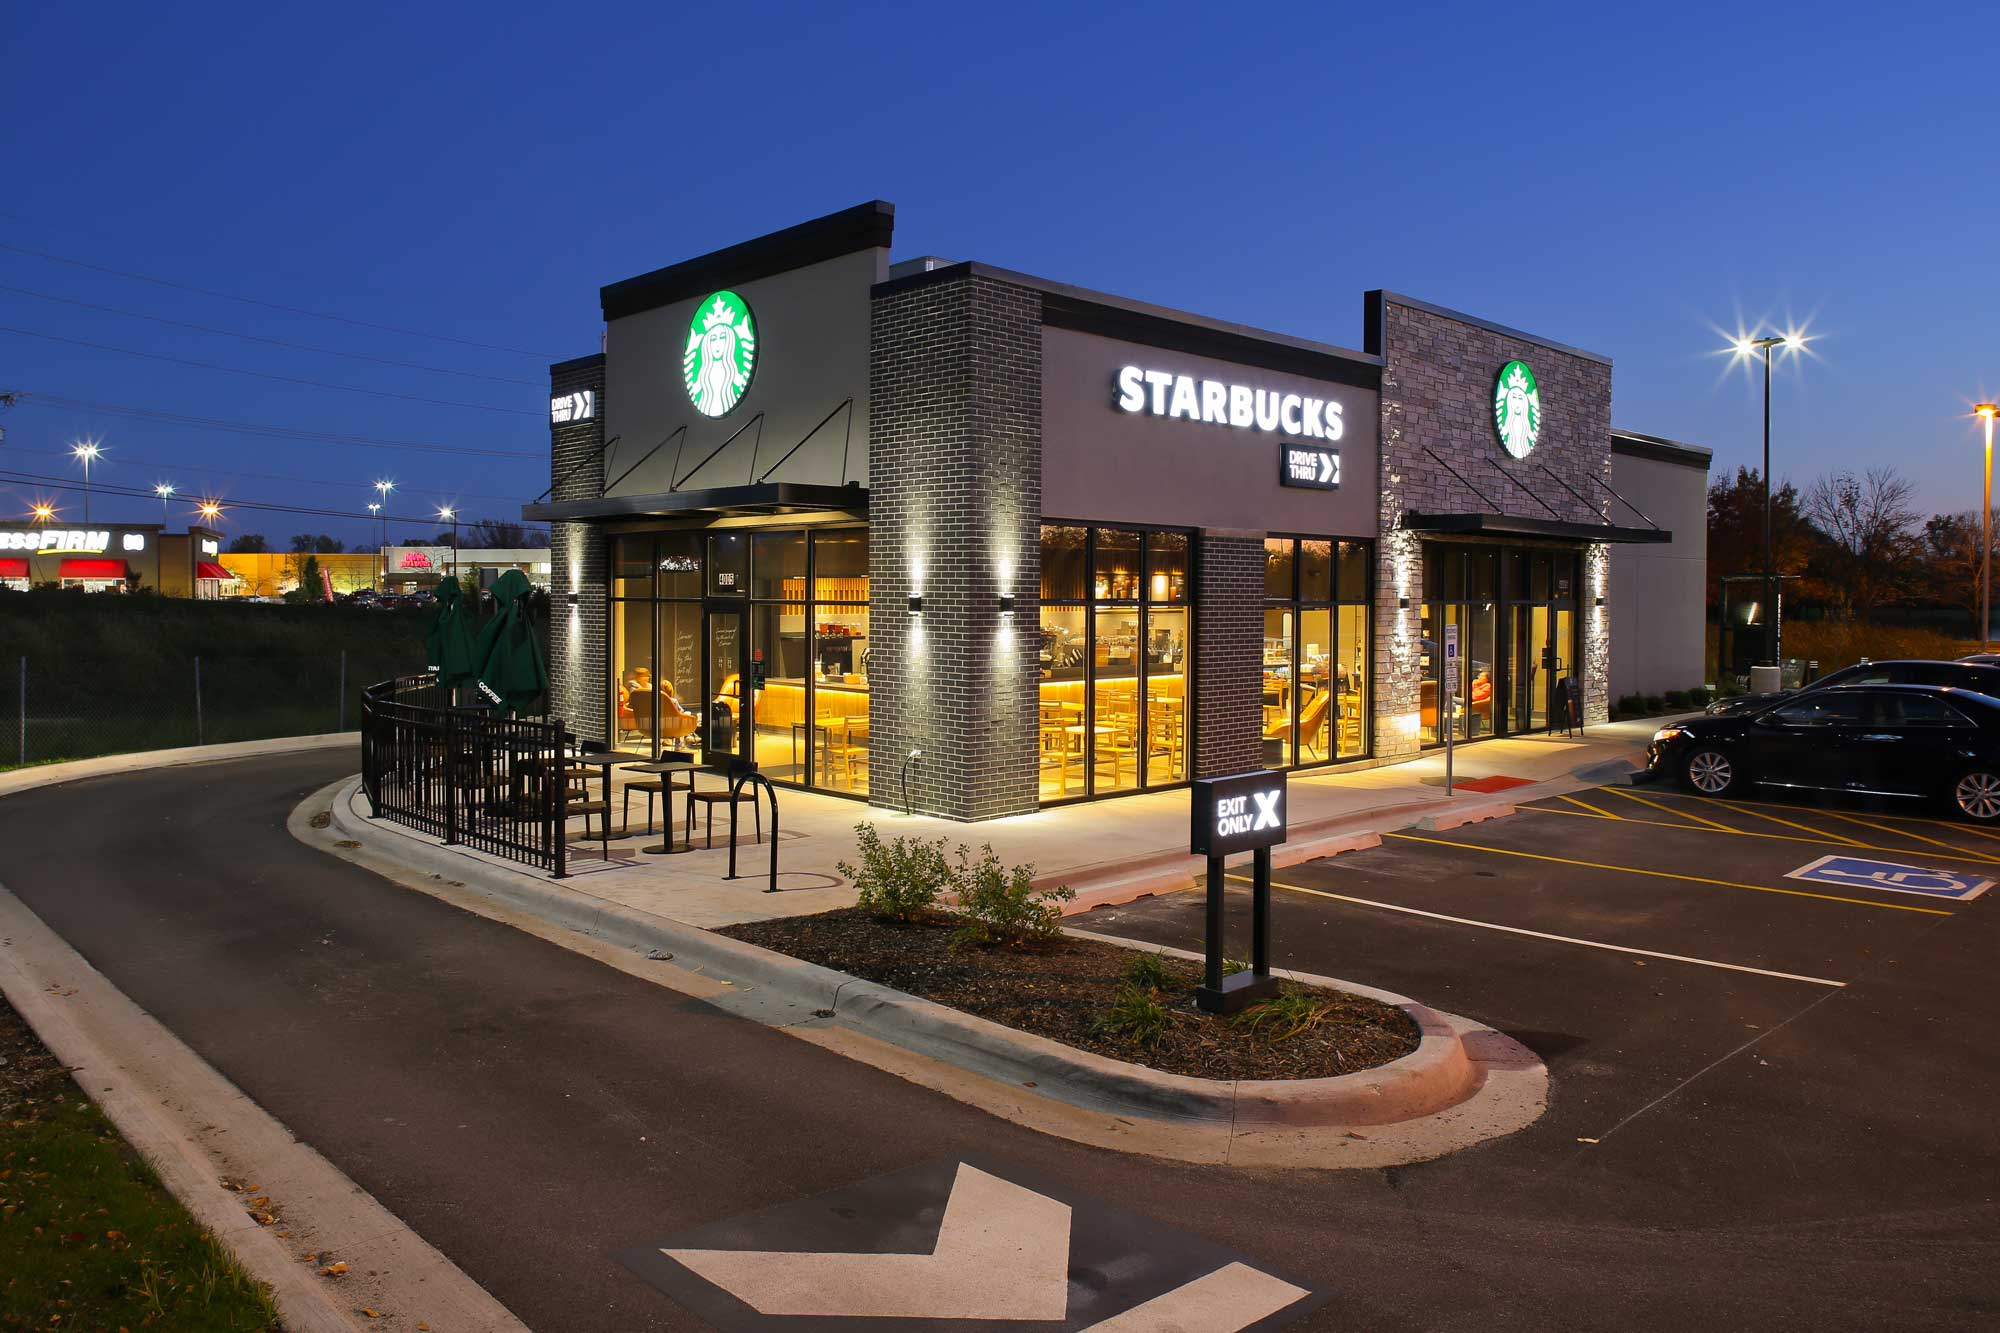 Feature of Starbucks built by Daxon Construction view 3